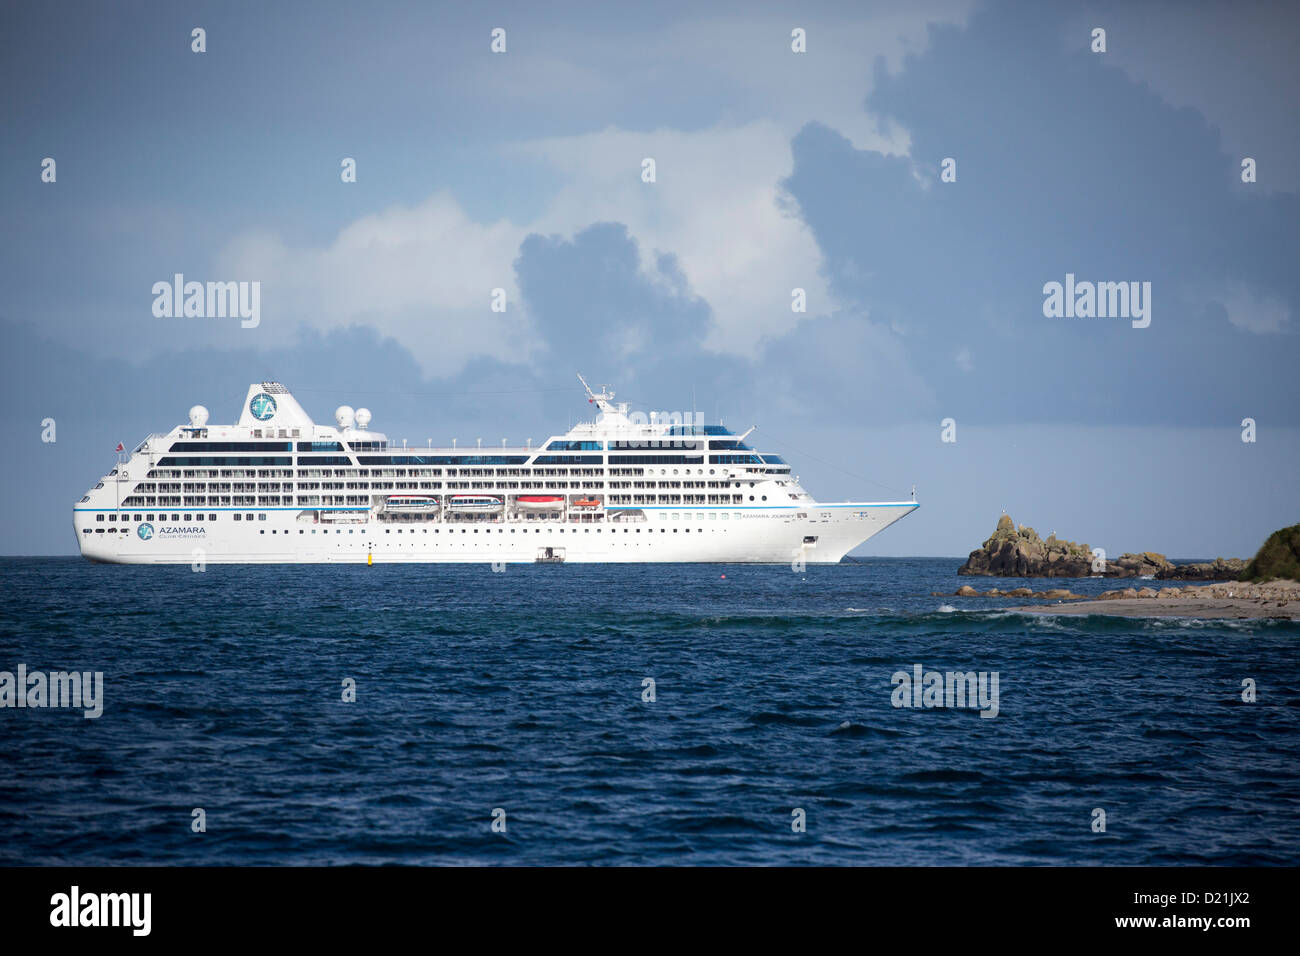 Cruise ship Azamara Journey, Azamara Club Cruises, Near St Marys, Isles of Scilly, Cornwall, England - Stock Image